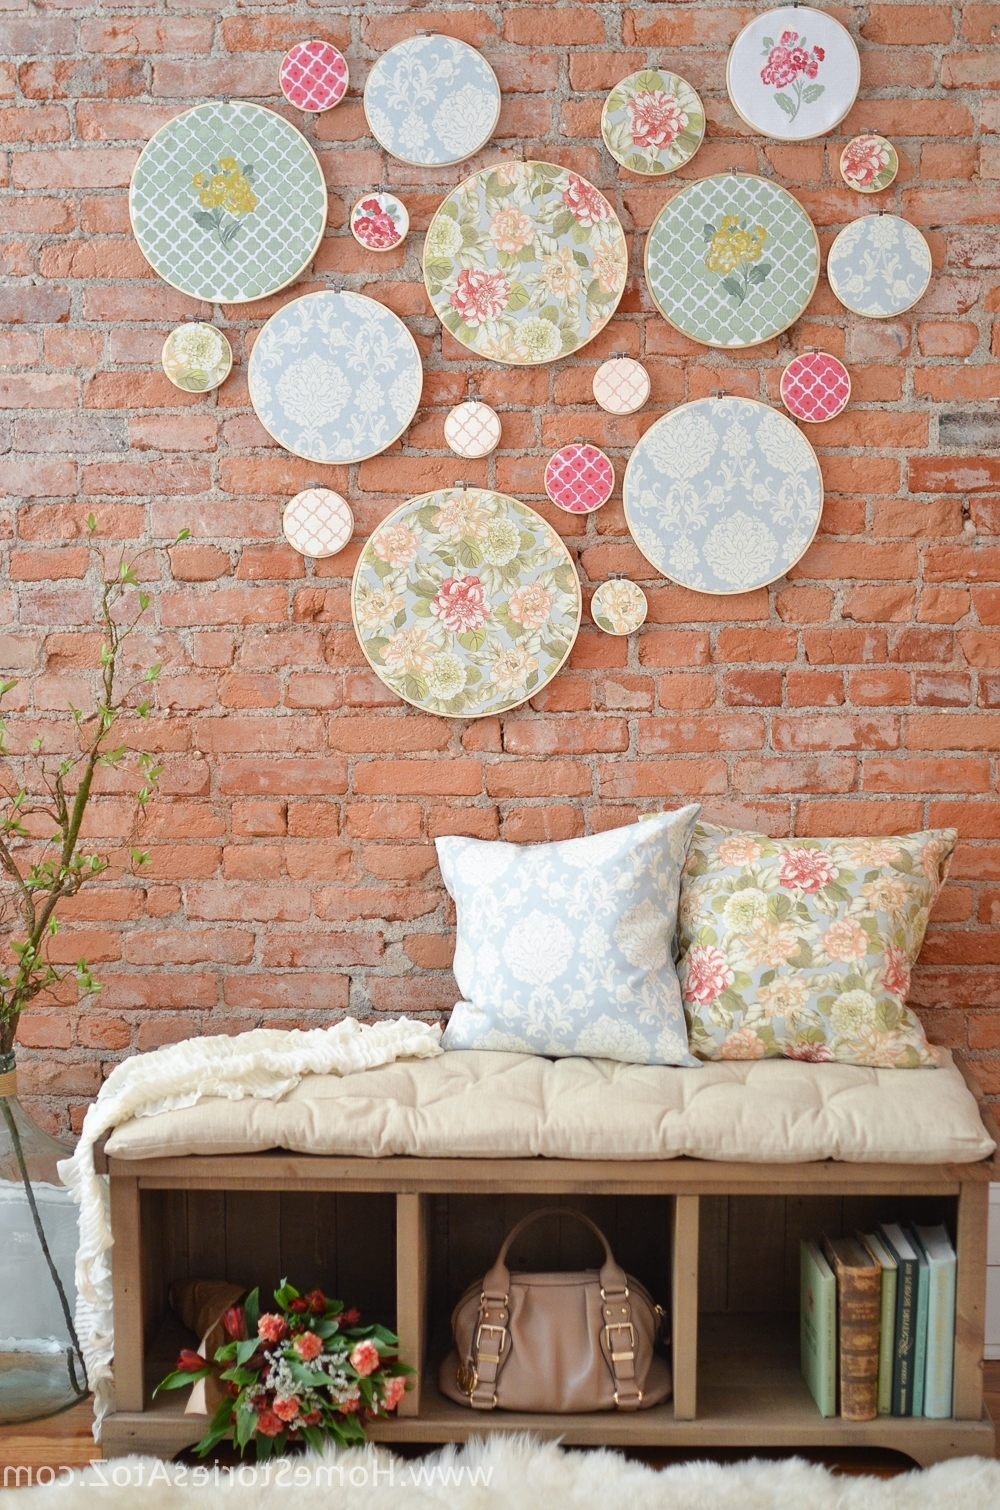 Diy Embroidery Hoop Wall Art – Home Stories A To Z Intended For Most Recent Embroidery Hoop Fabric Wall Art (View 3 of 15)